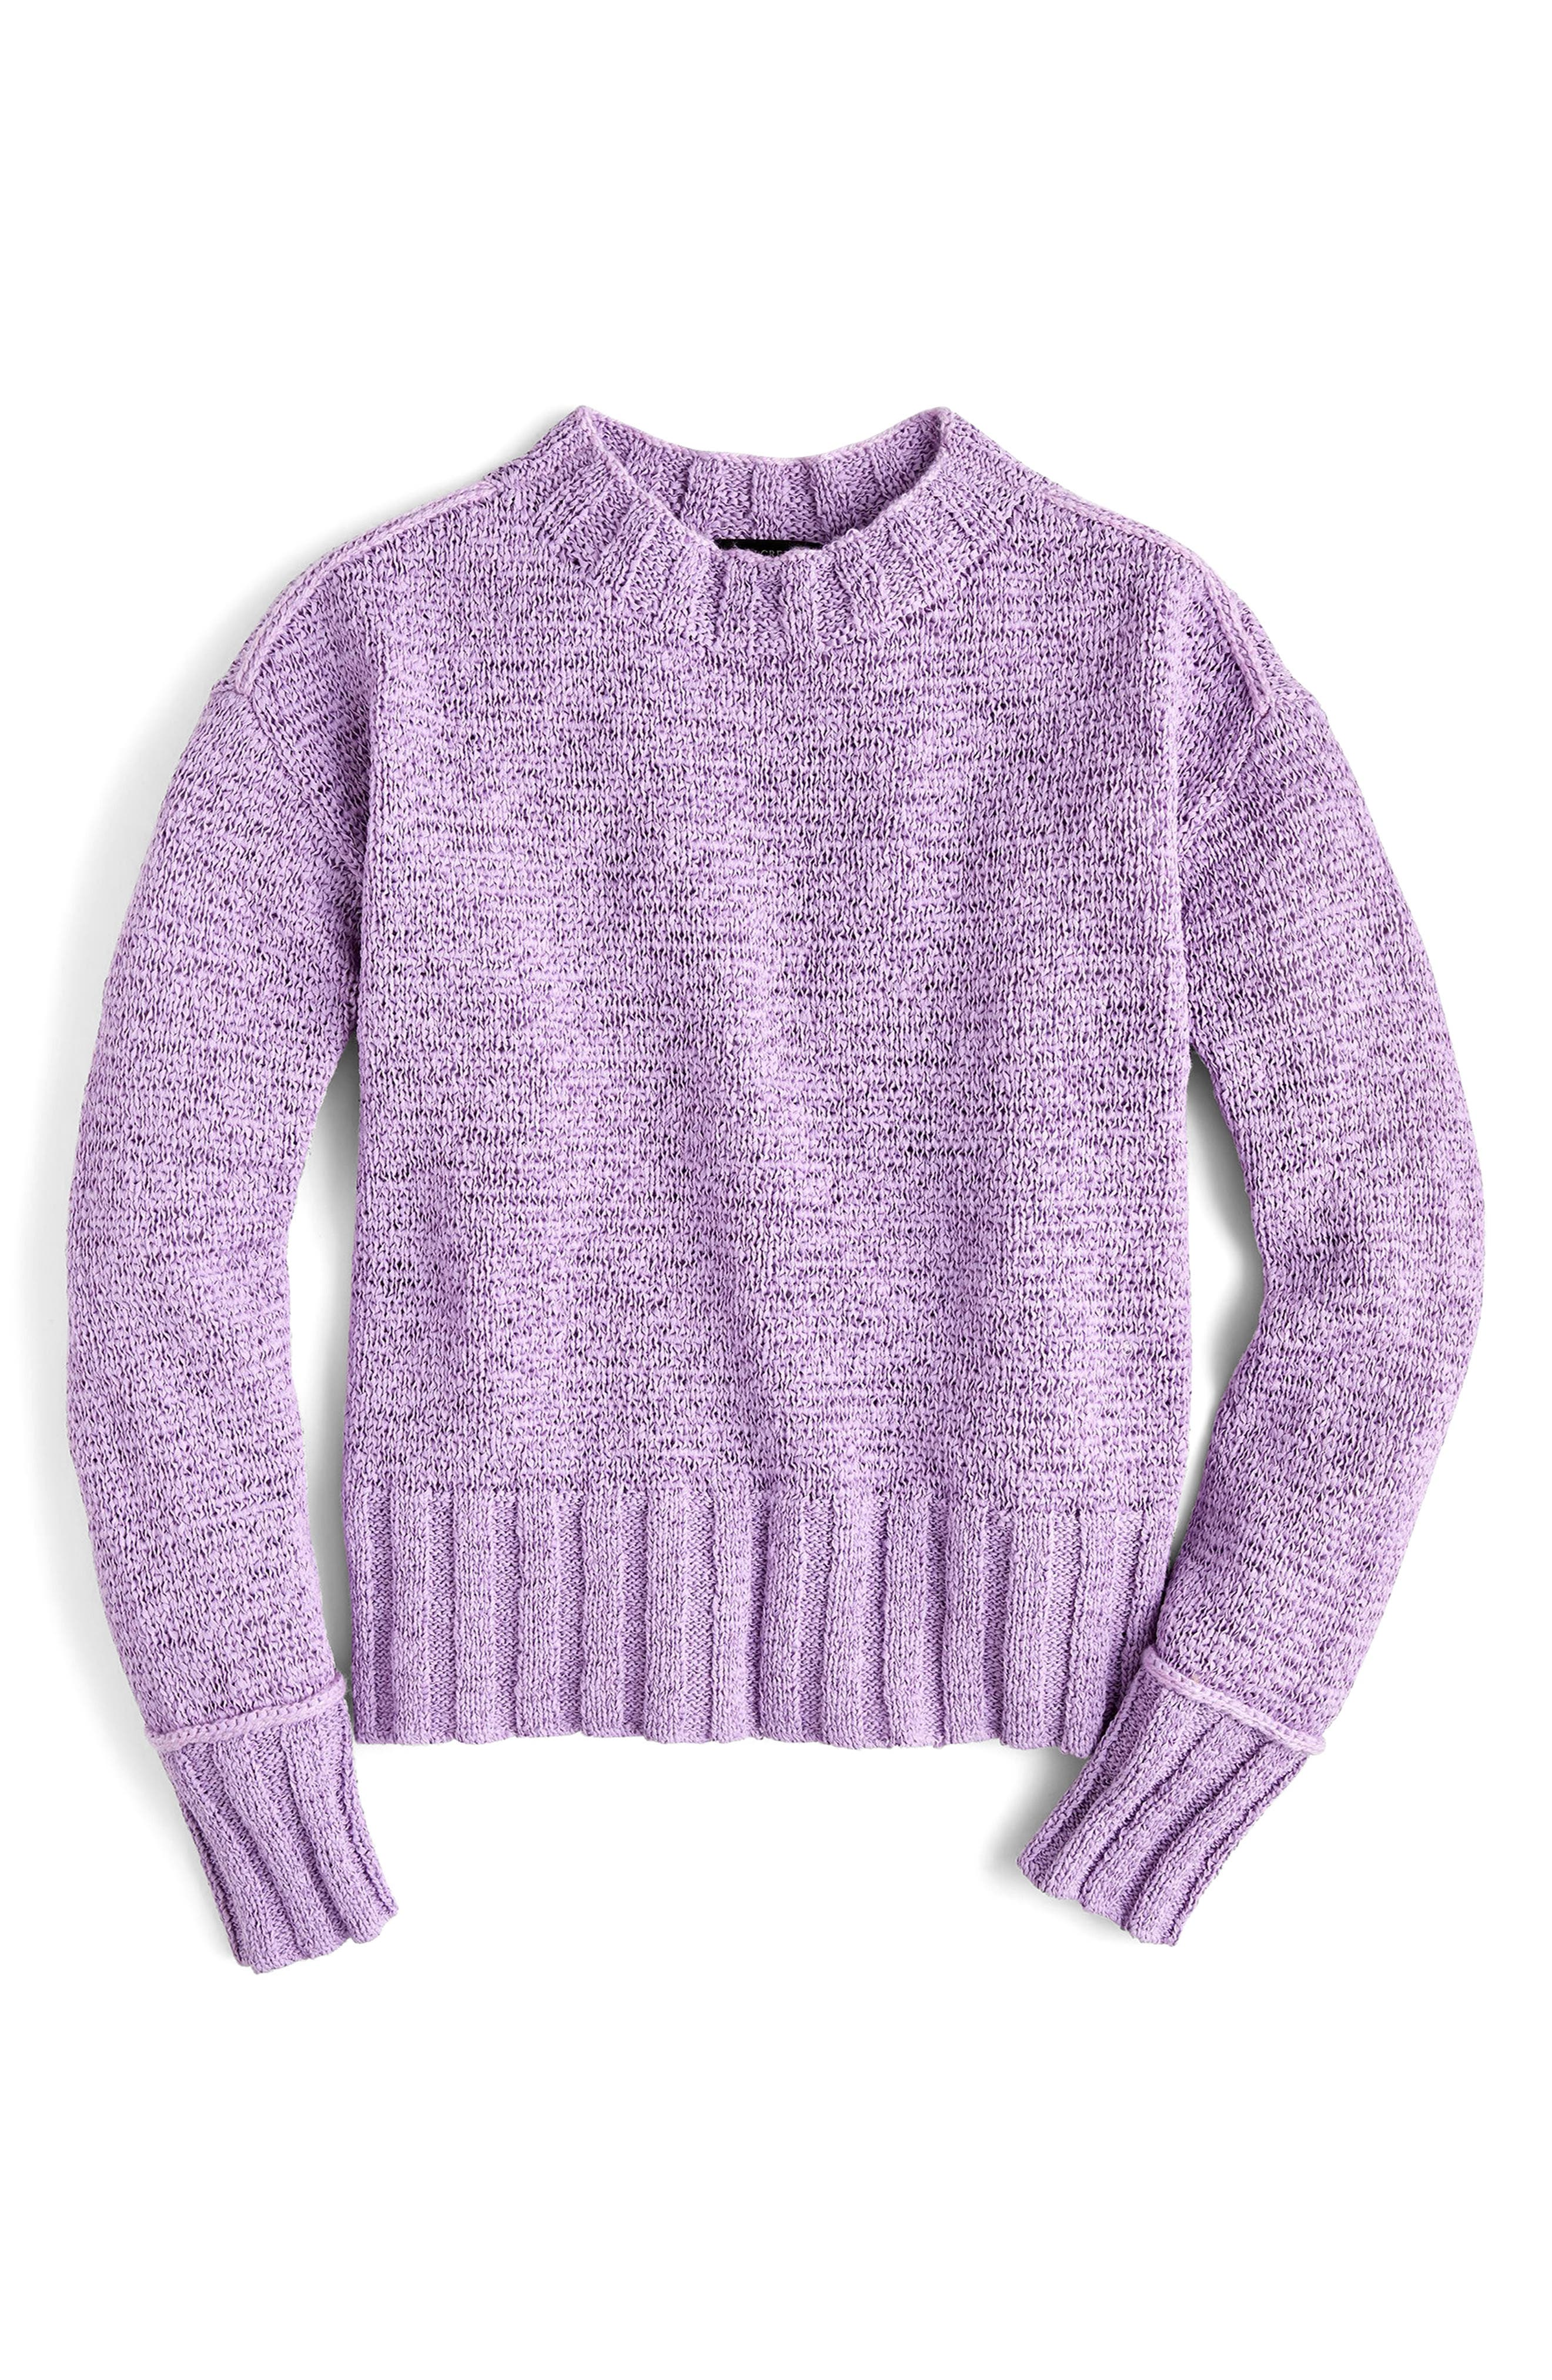 Erica Heathered Cotton Wide Rib Crewneck Sweater,                             Main thumbnail 1, color,                             Faded Lavender